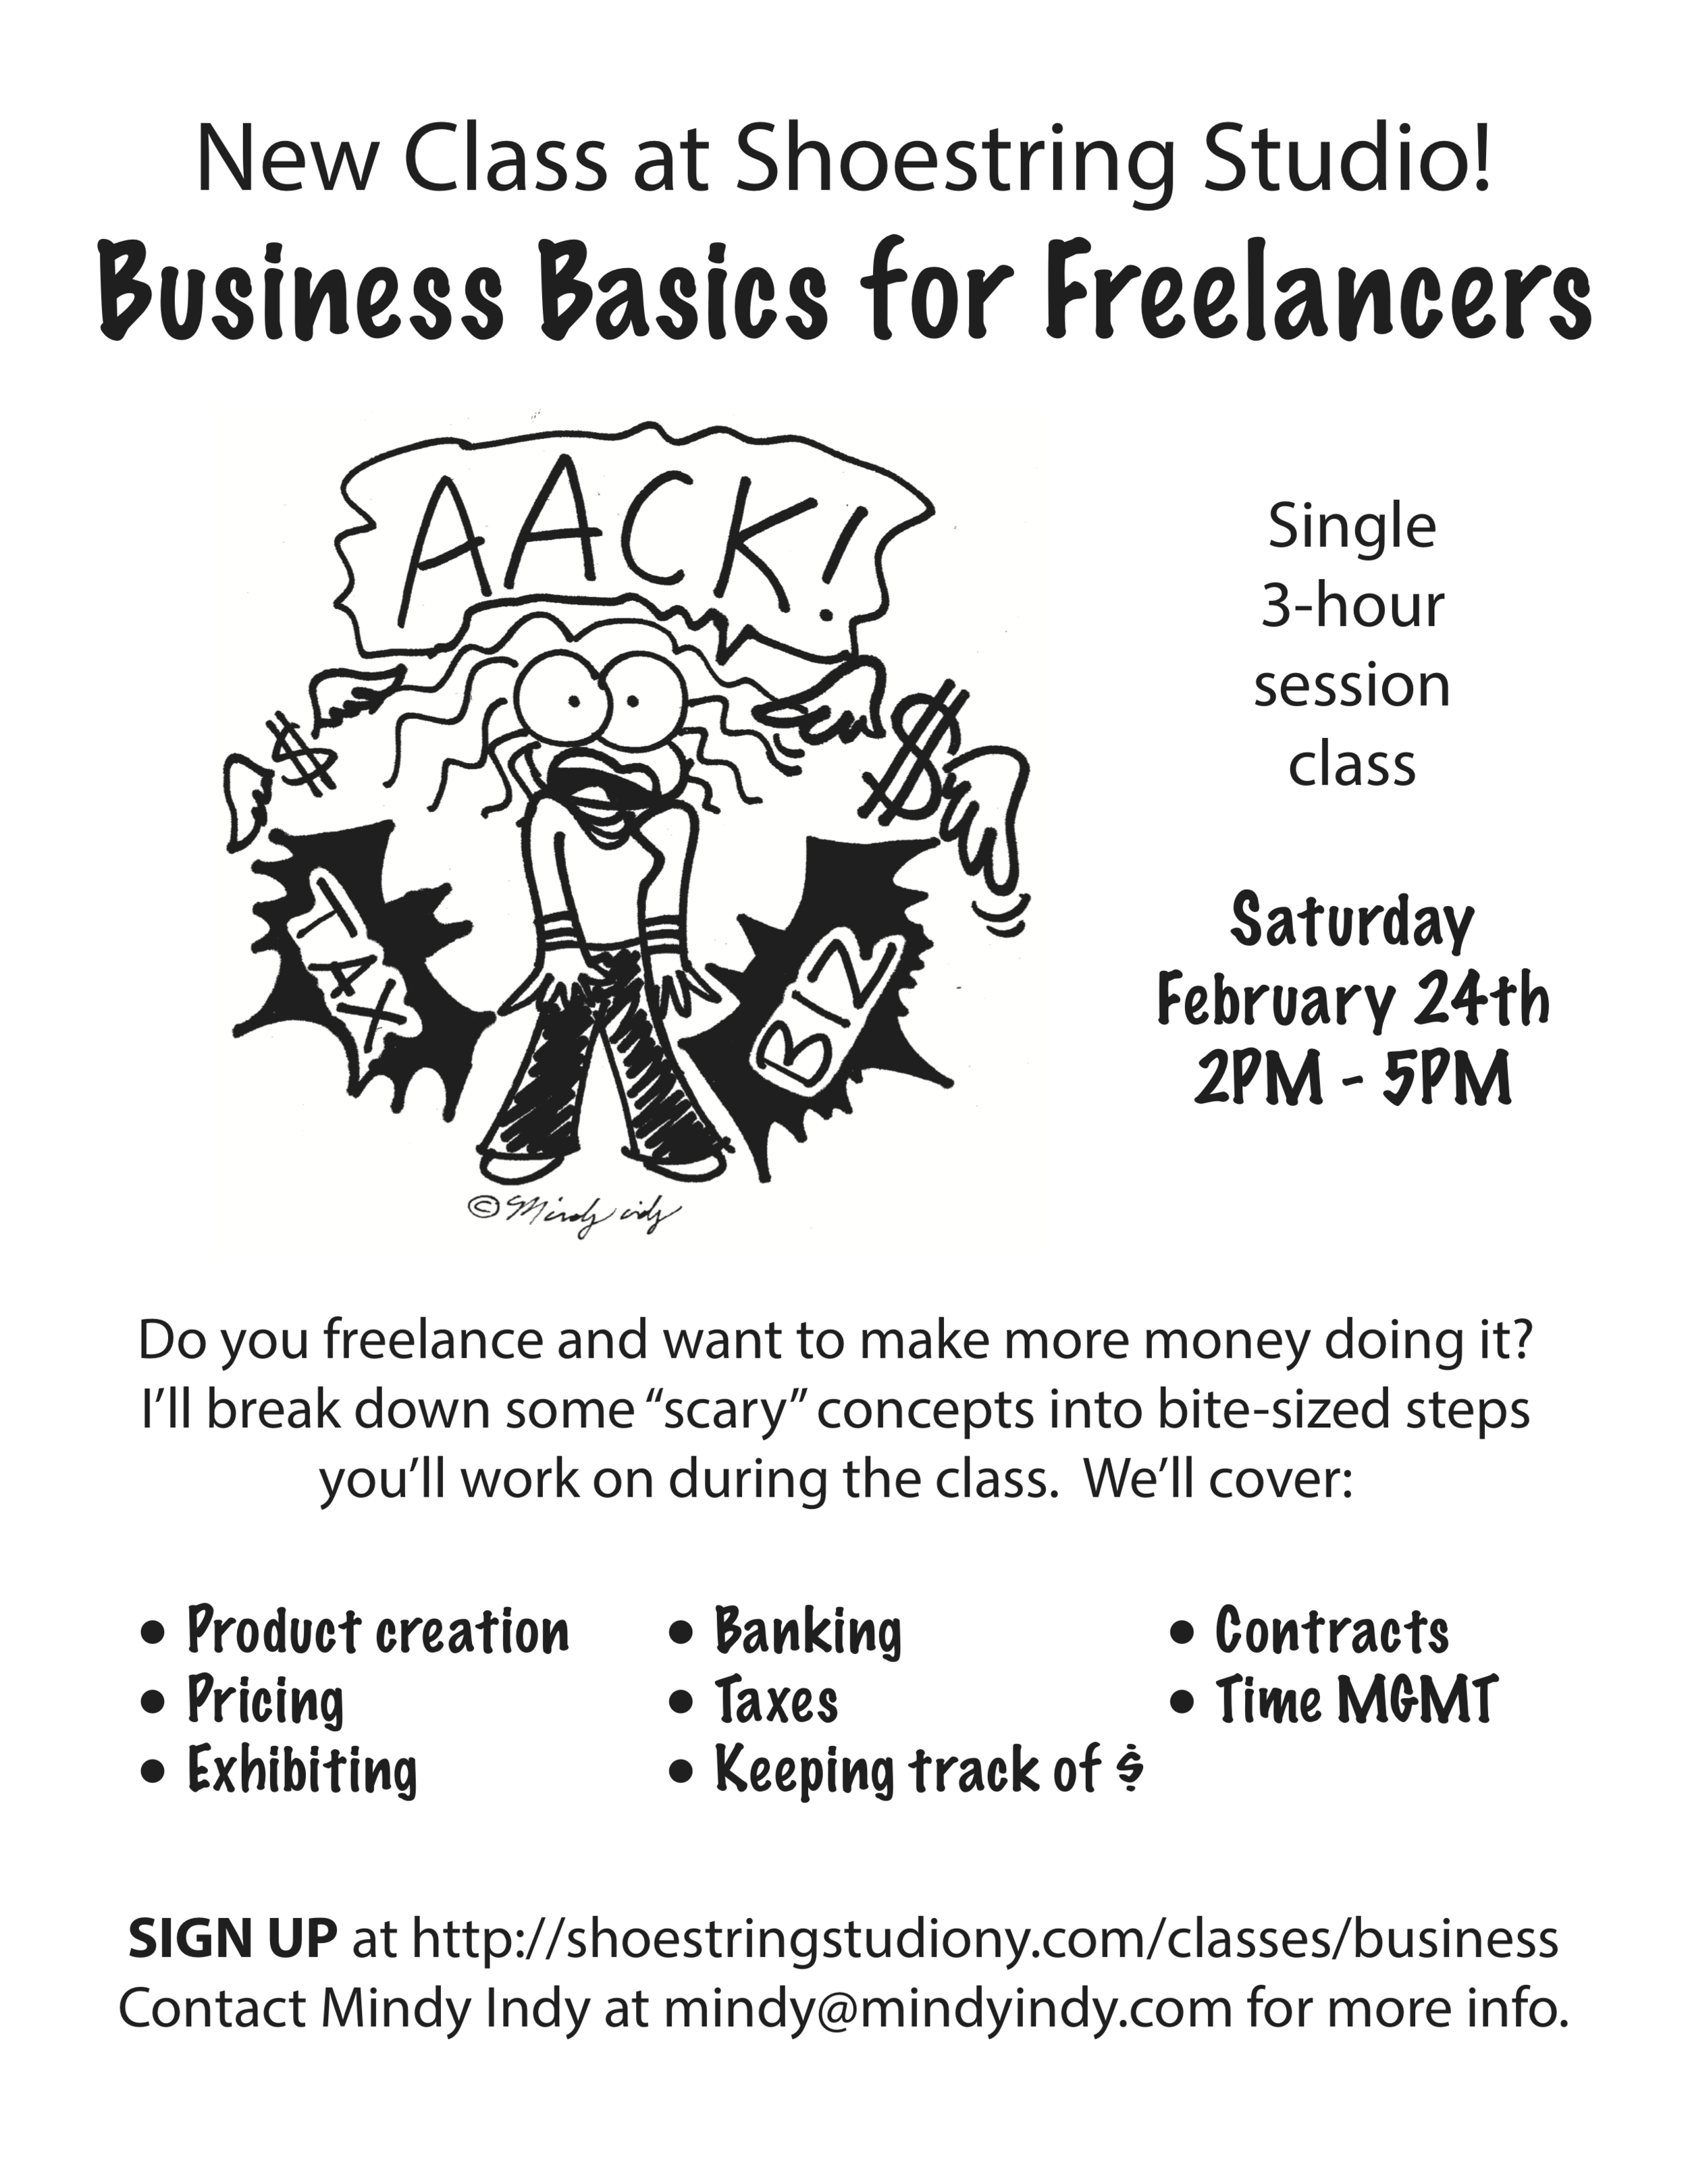 FlyerBusinessFreelancer.png